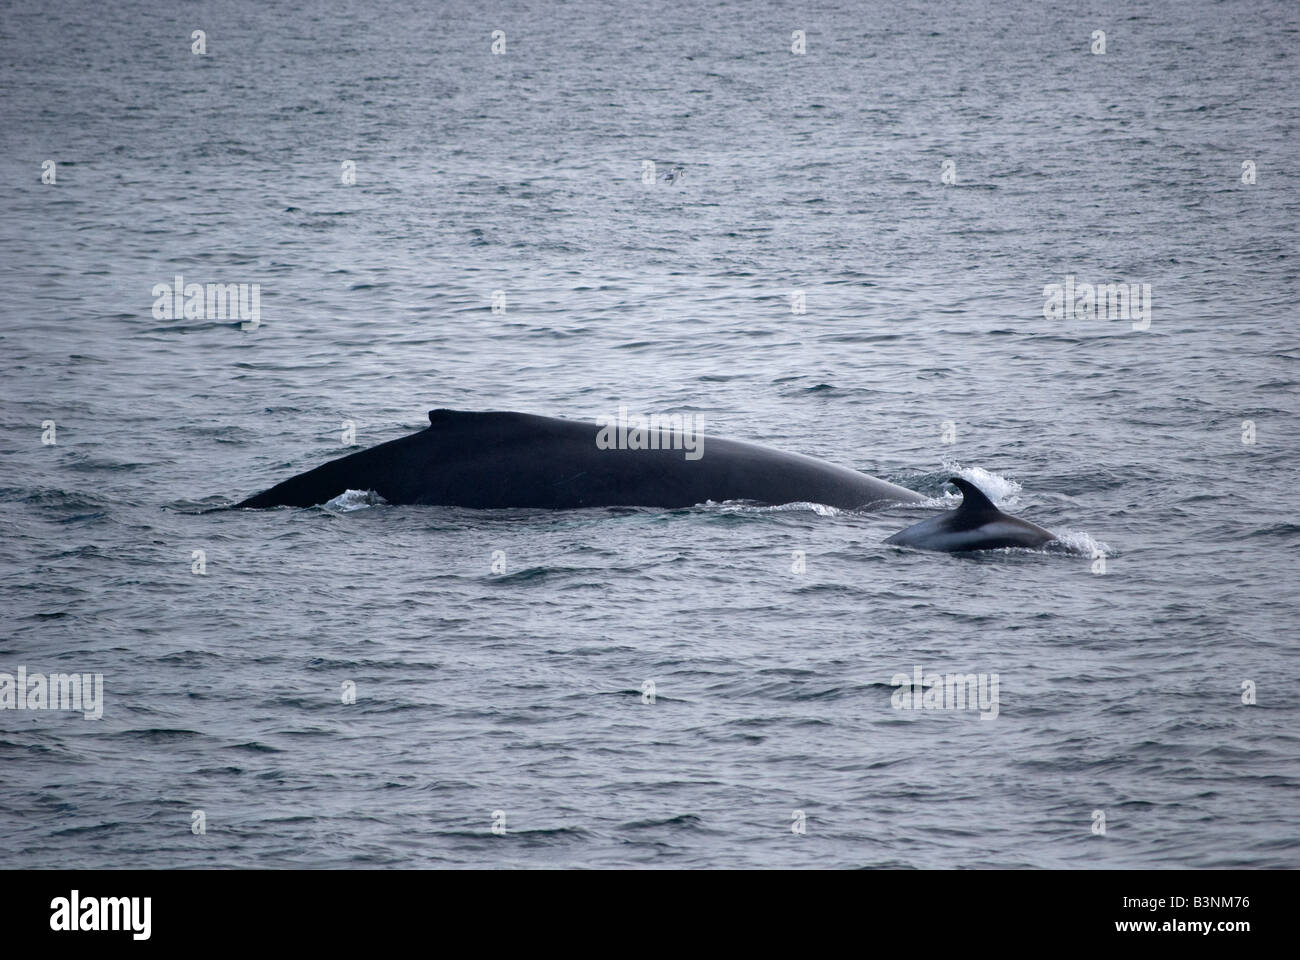 Humpback Whale (Megaptera novaeangliae) and White-beaked Dolphin (Lagenorhynchus albirostris), Faxafloi Bay, Iceland - Stock Image